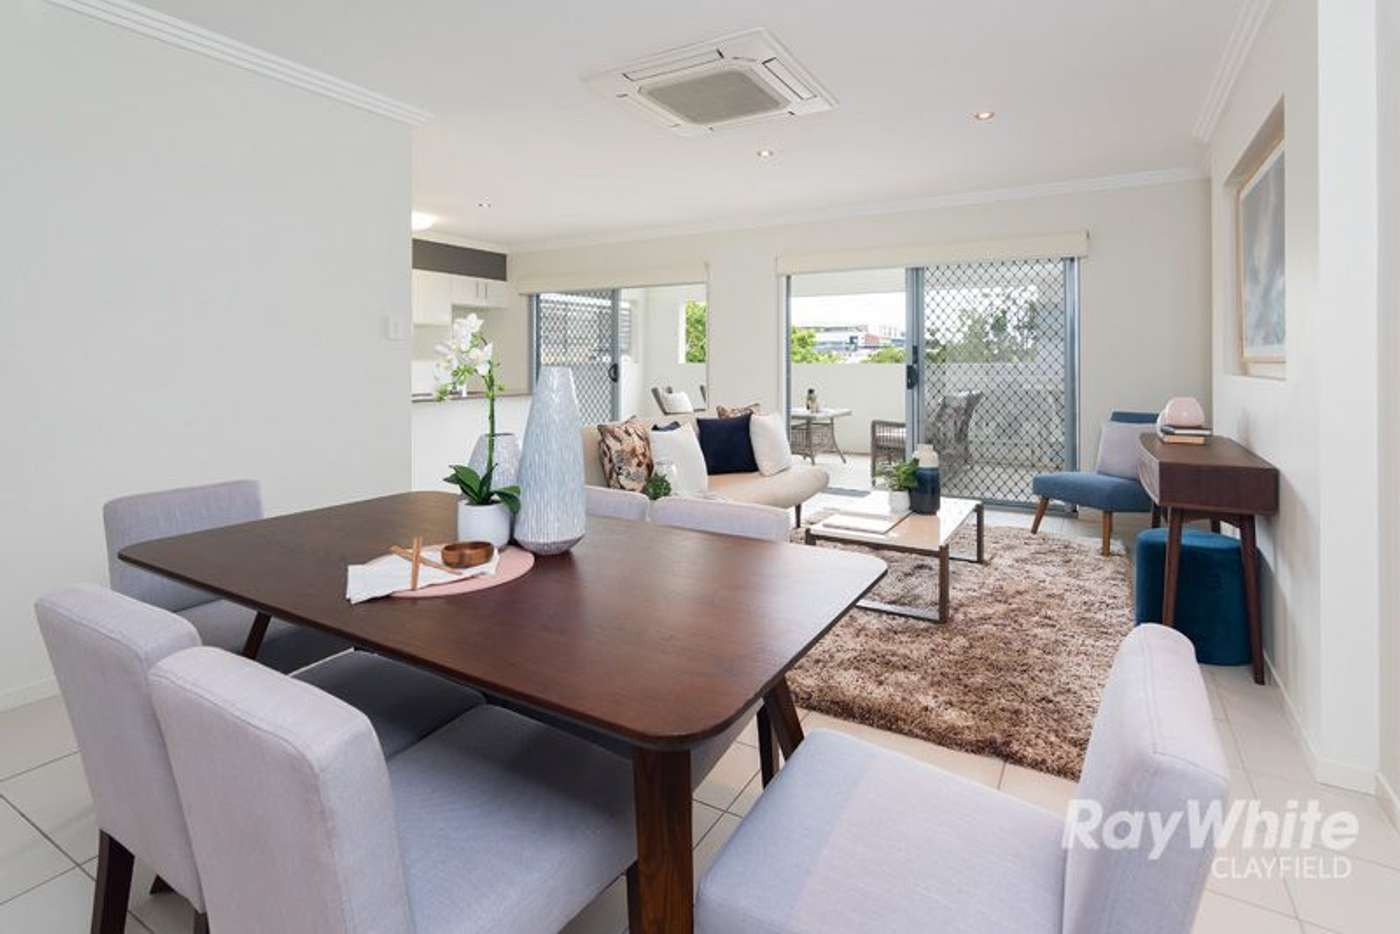 Fifth view of Homely unit listing, 10/19 Riverton Street, Clayfield QLD 4011